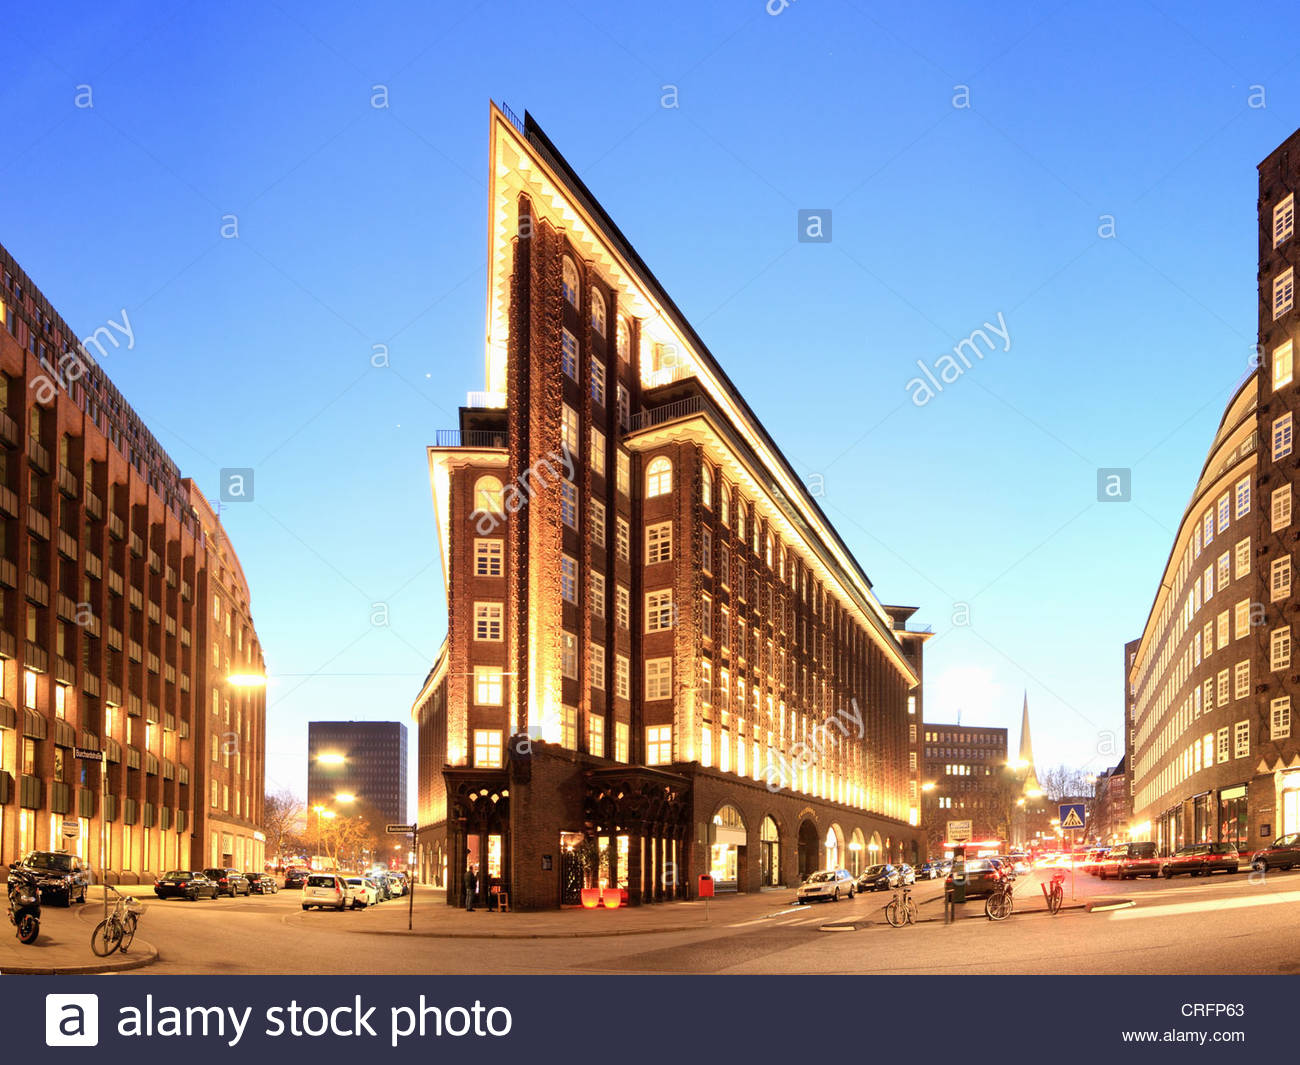 Lit buildings in Hamburg at night - Stock Image